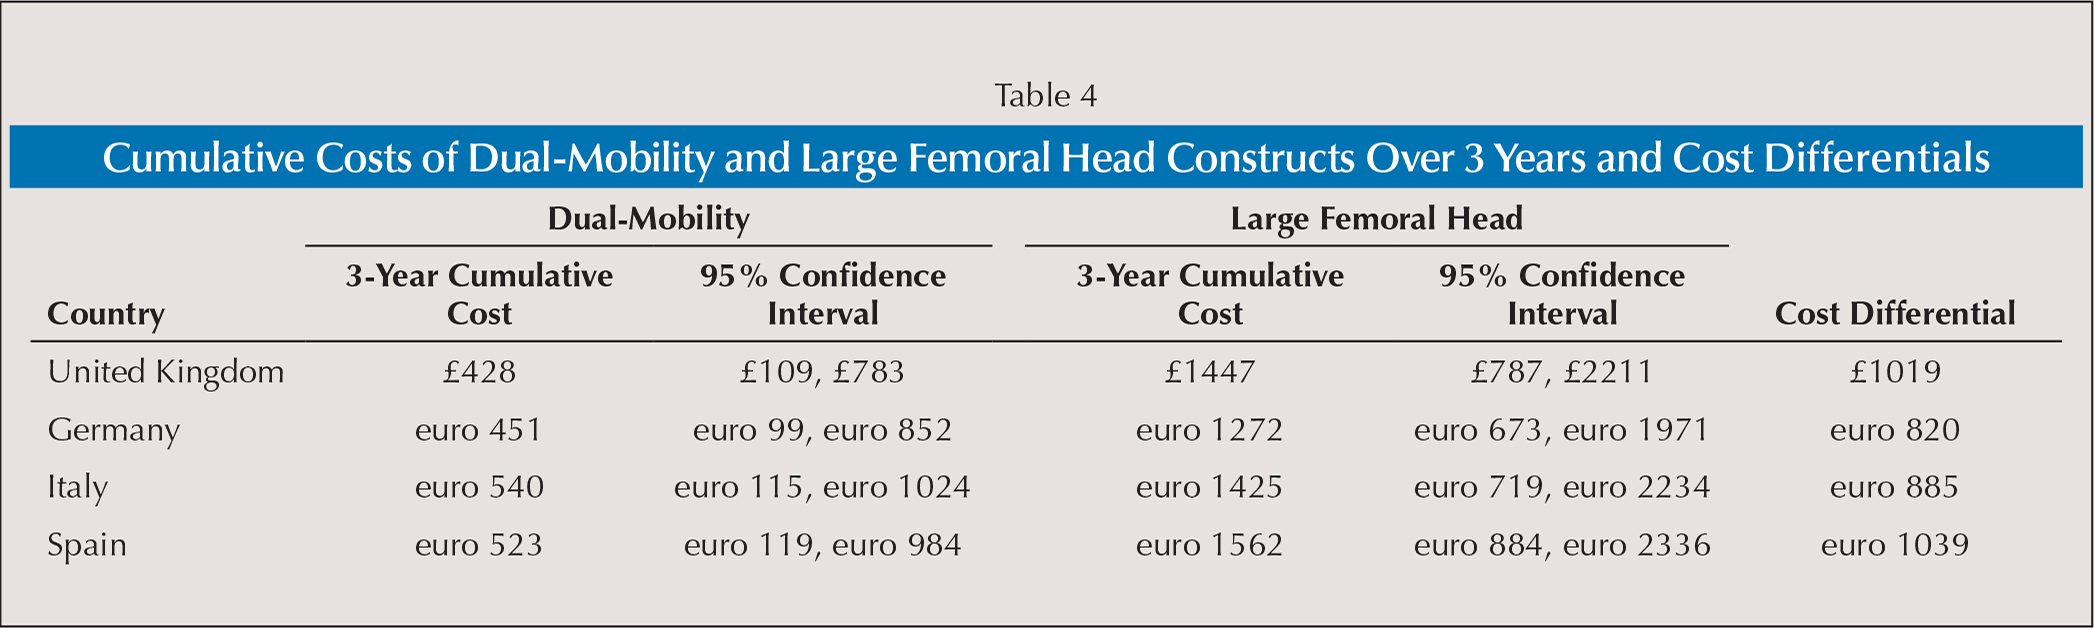 Cumulative Costs of Dual-Mobility and Large Femoral Head Constructs Over 3 Years and Cost Differentials